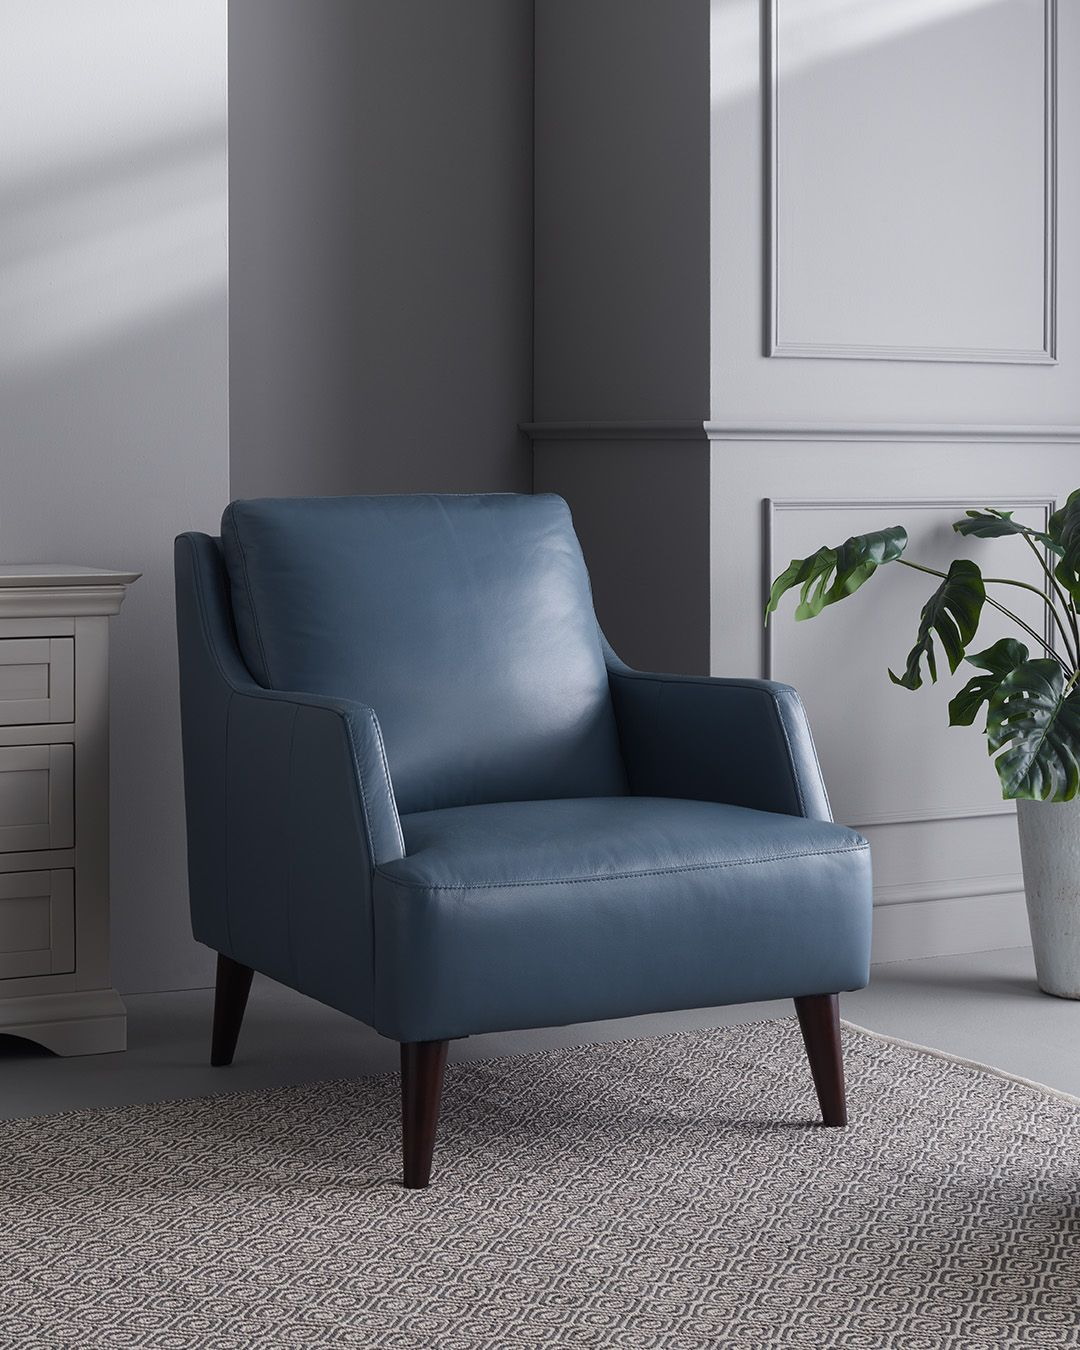 Trend Sky Blue Leather Accent Chair Blue accent chairs